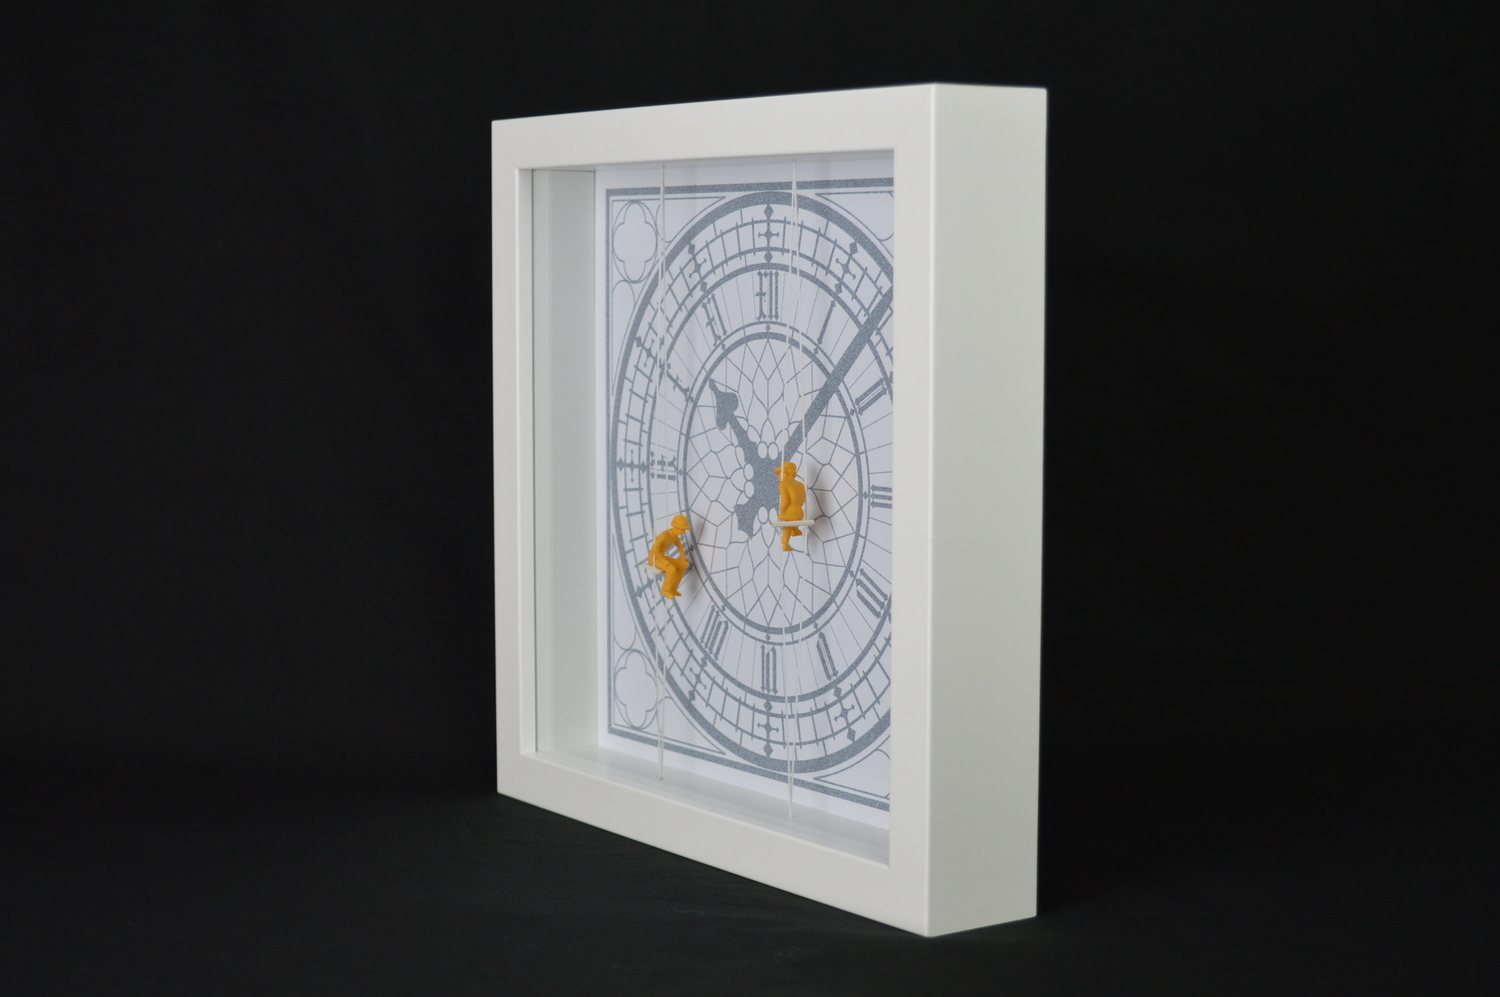 3D wall art, featuring Big Ben under construction by 'Allisdesign'.  Made in England